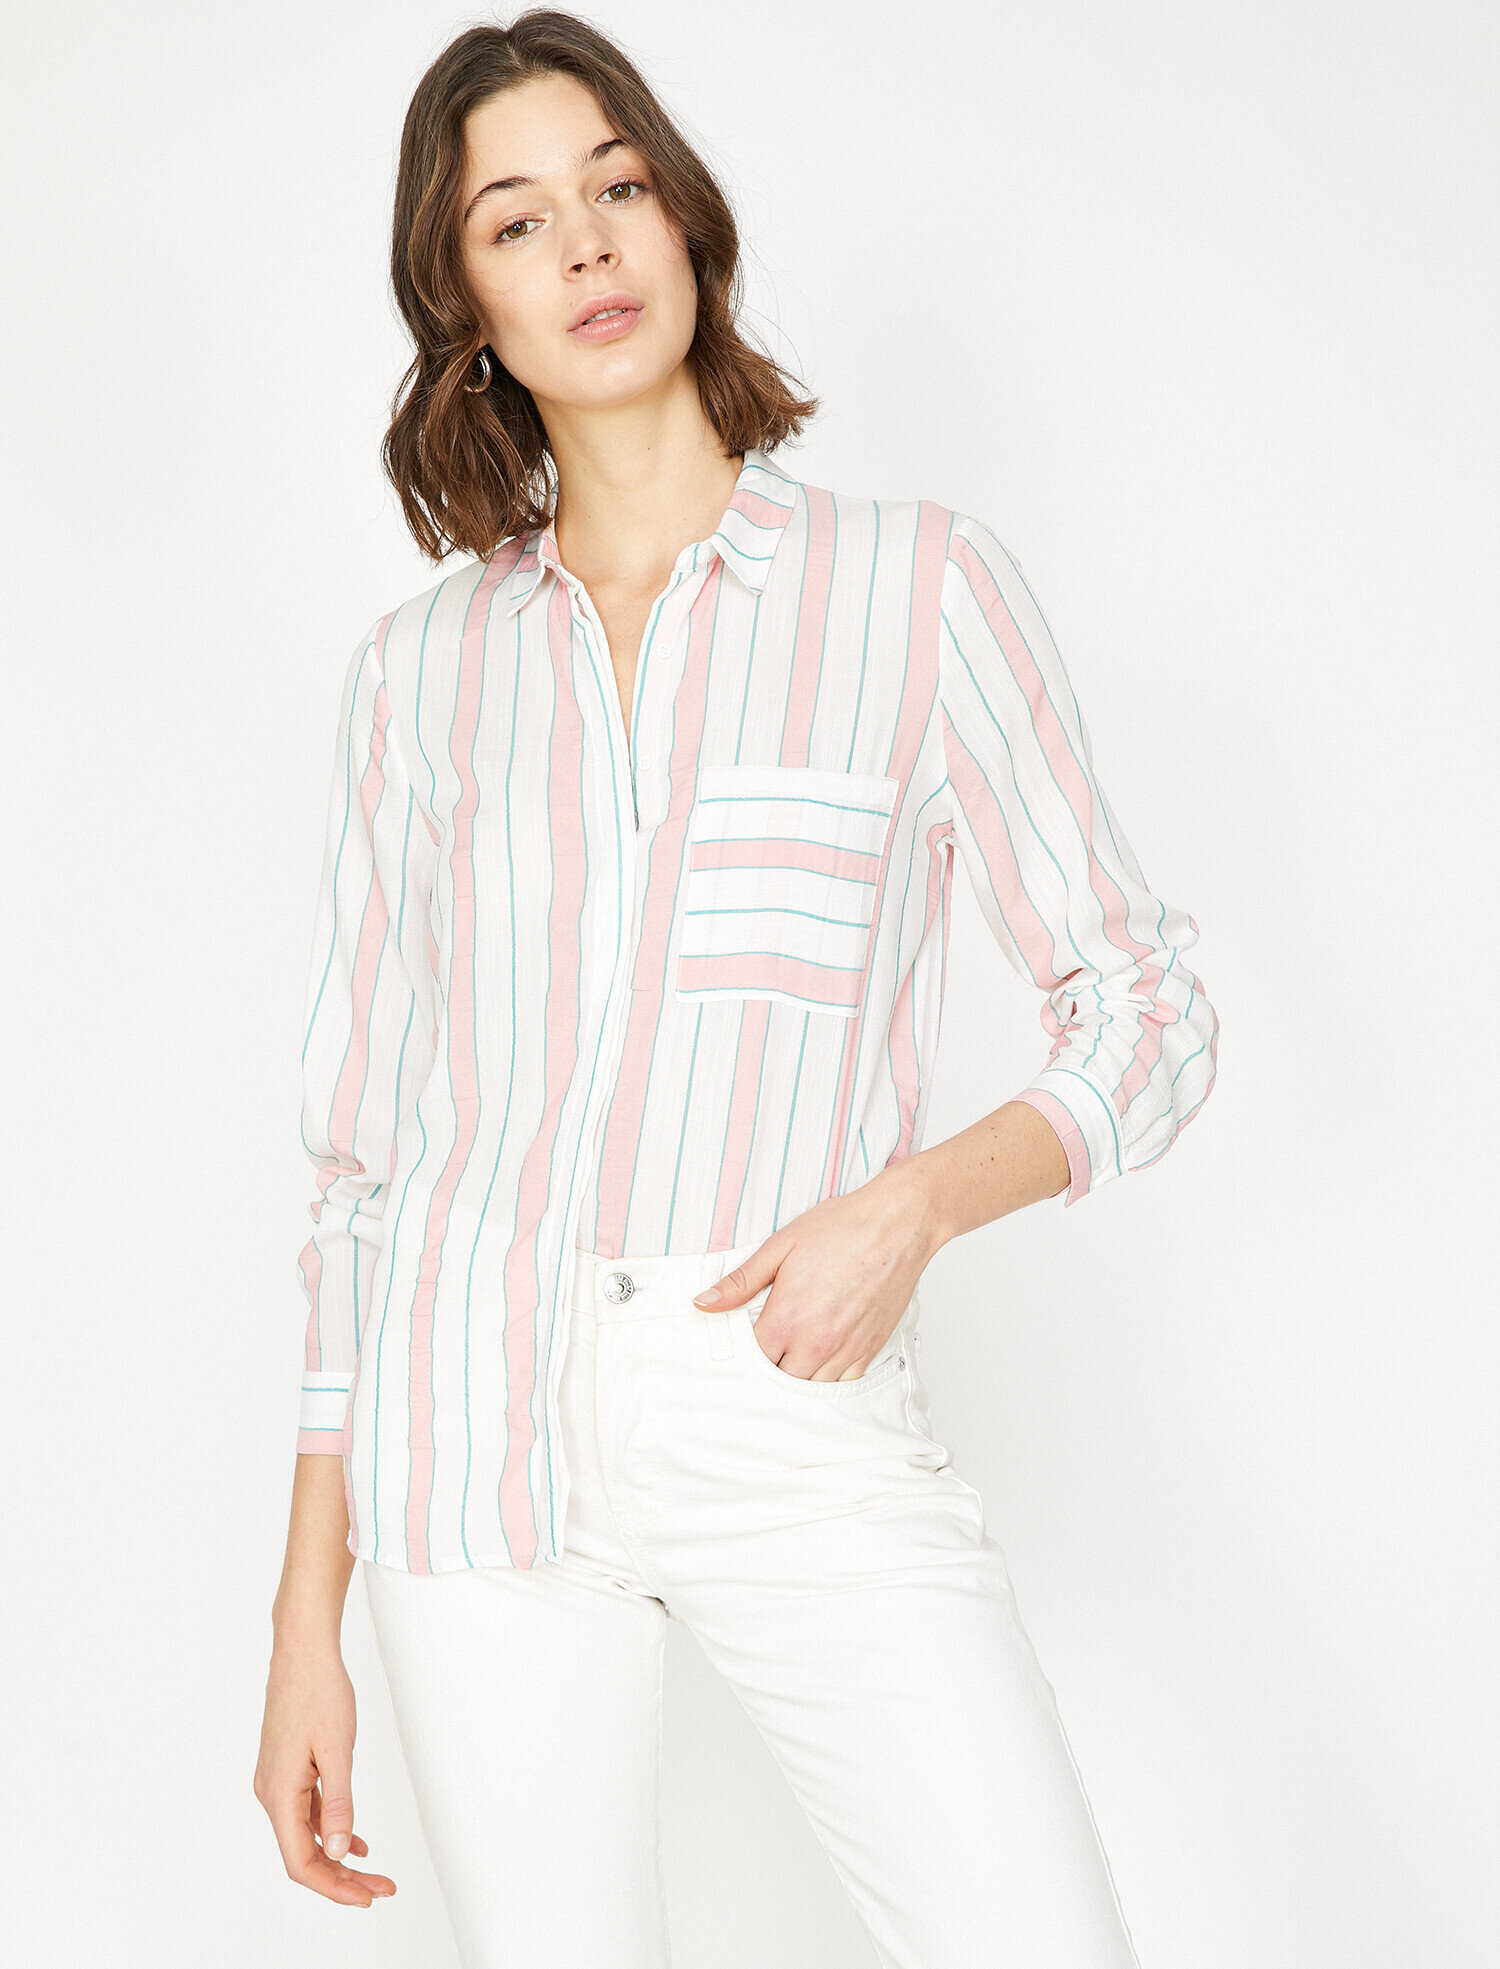 d41e524843f4c Ladies Pink And White Striped Shirt – EDGE Engineering and ...